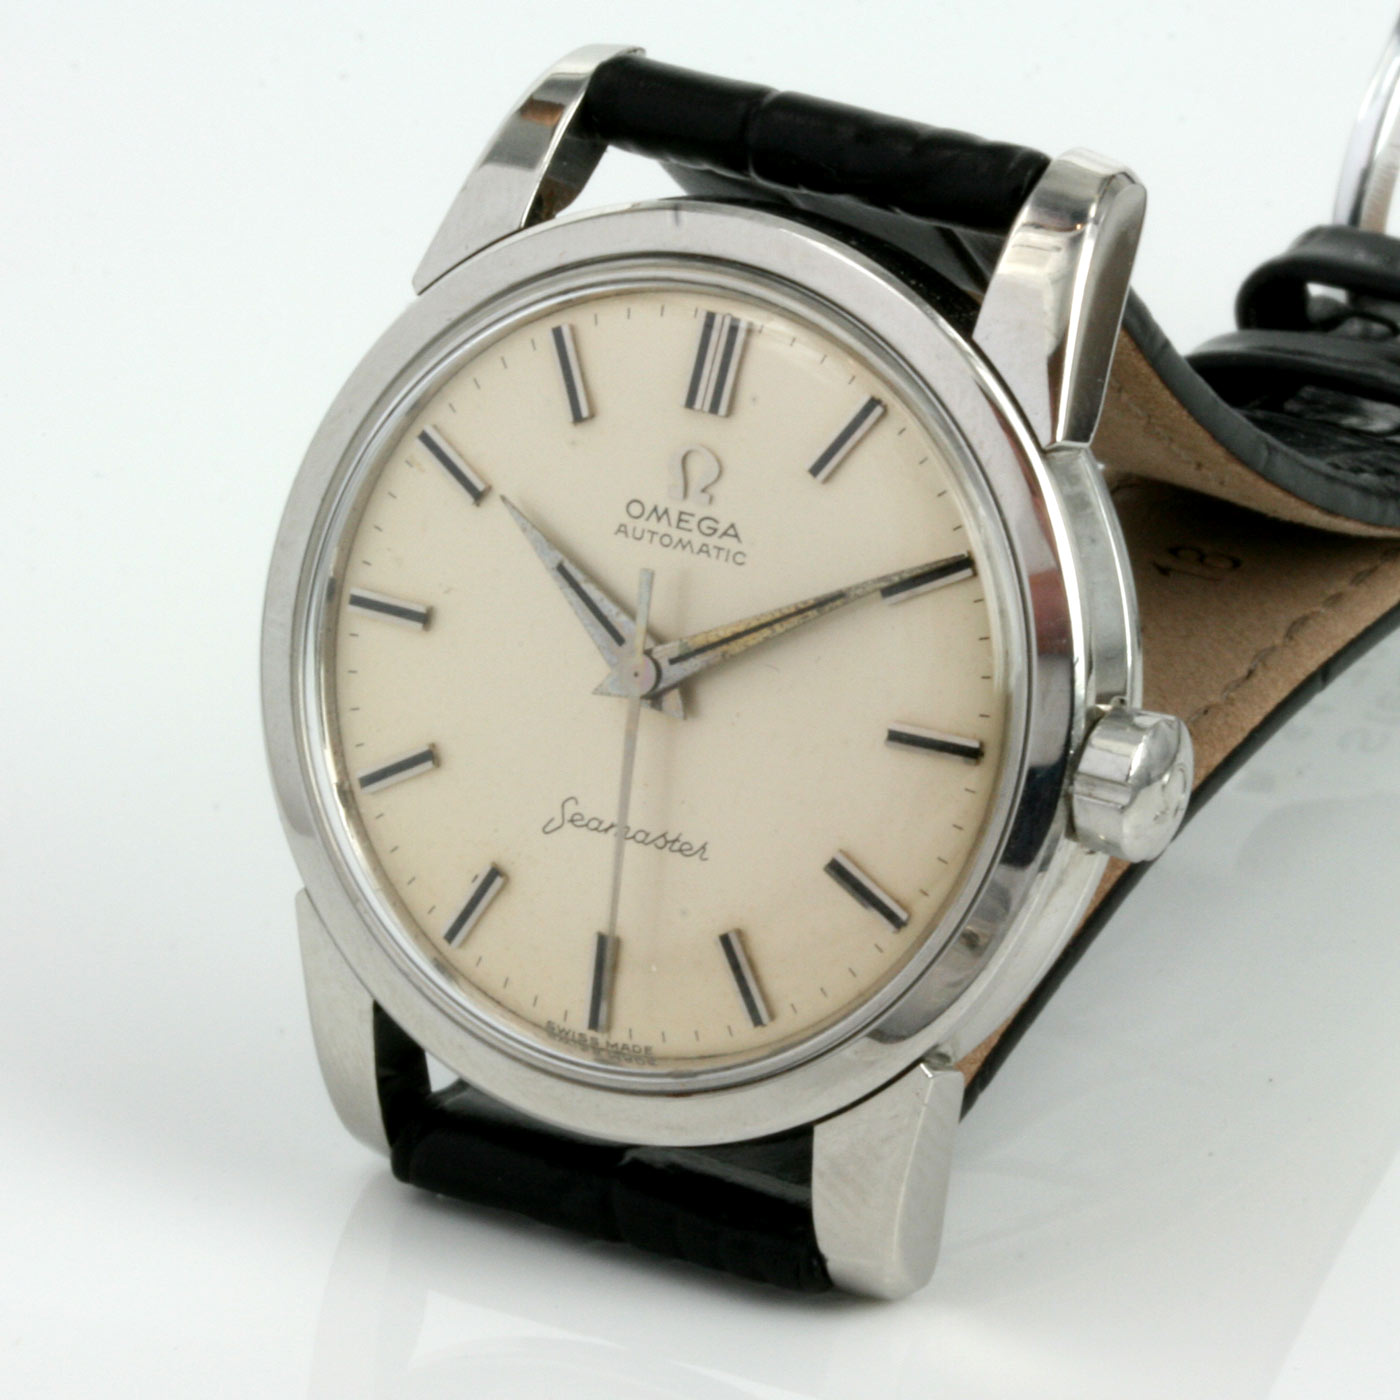 Buy vintage omega seamaster watch from 1958 sold items sold omega watches sydney kalmarantiques for Omega watch vintage